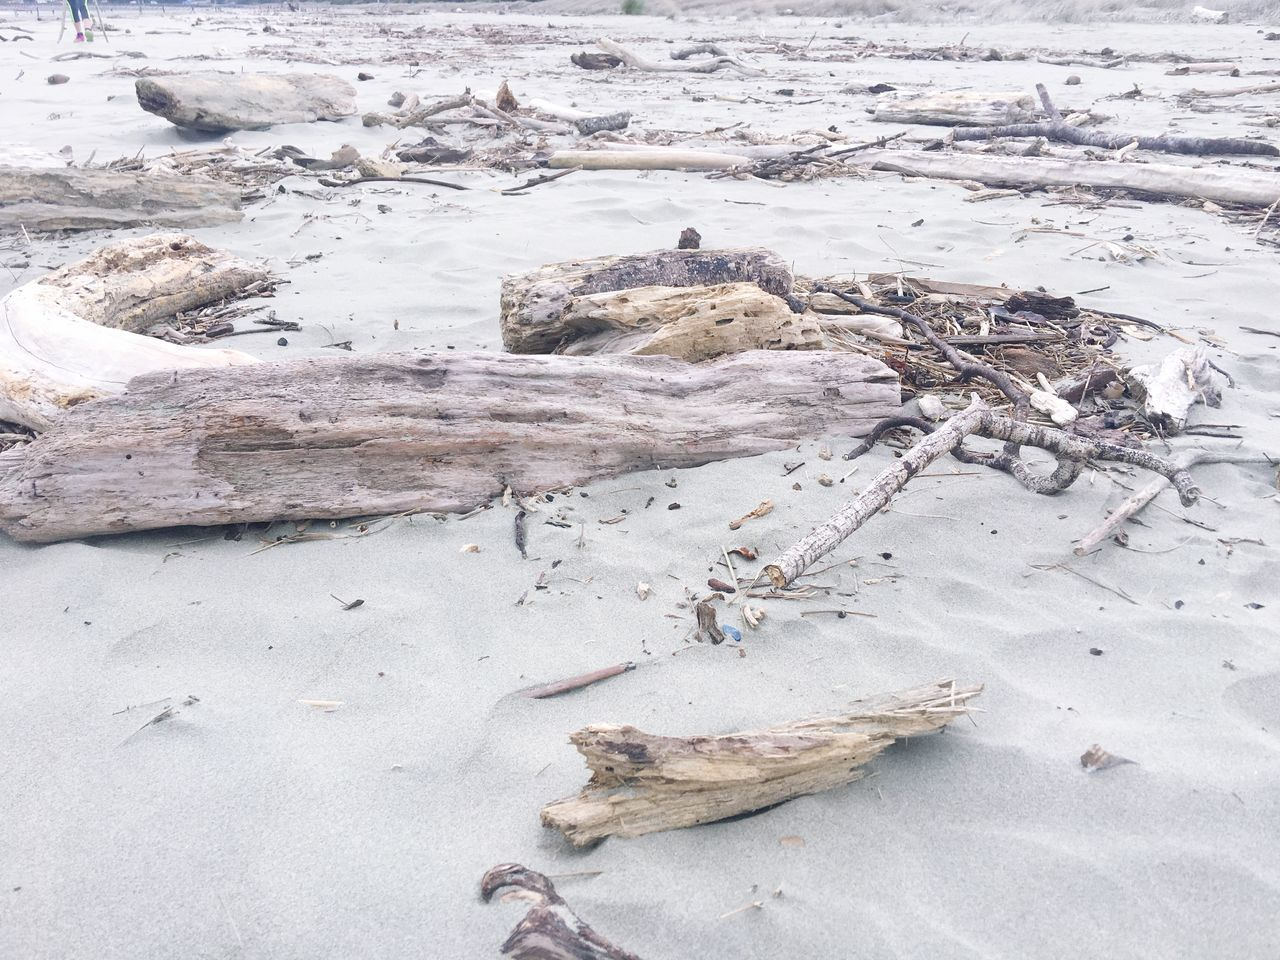 Driftwood debris on the beach Nature Coastal Feature Beach Beachphotography Sand Driftwood